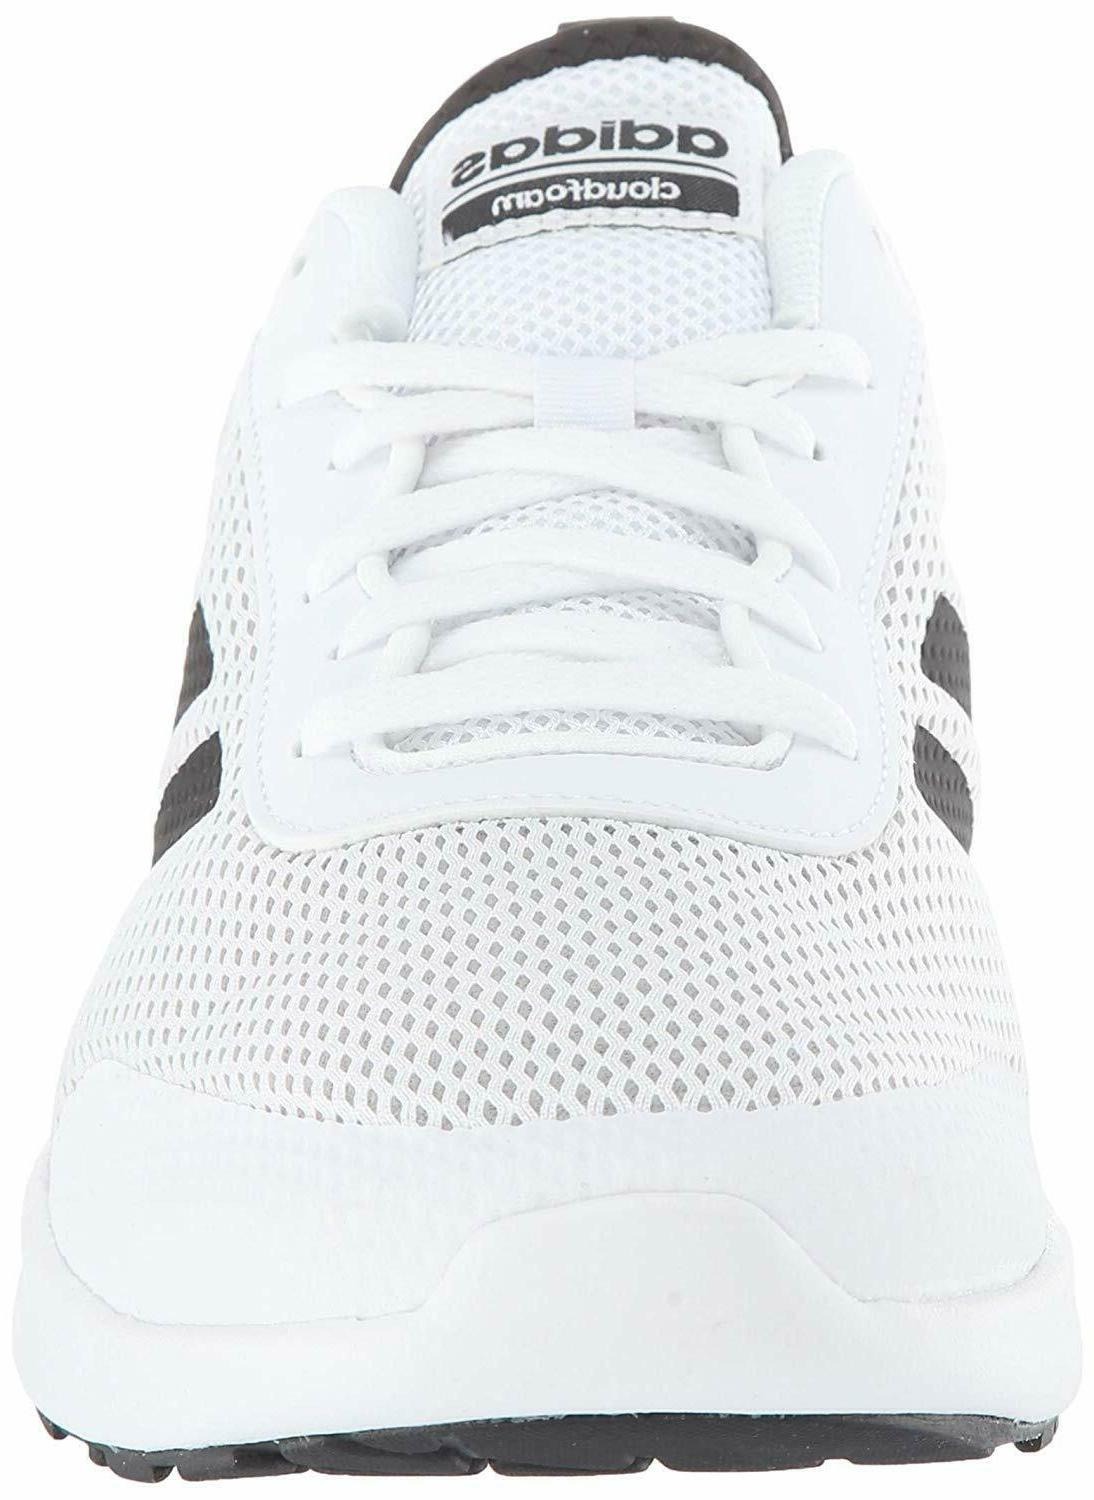 NEW! Adidas Race Argecy White Sport Shoes B44856